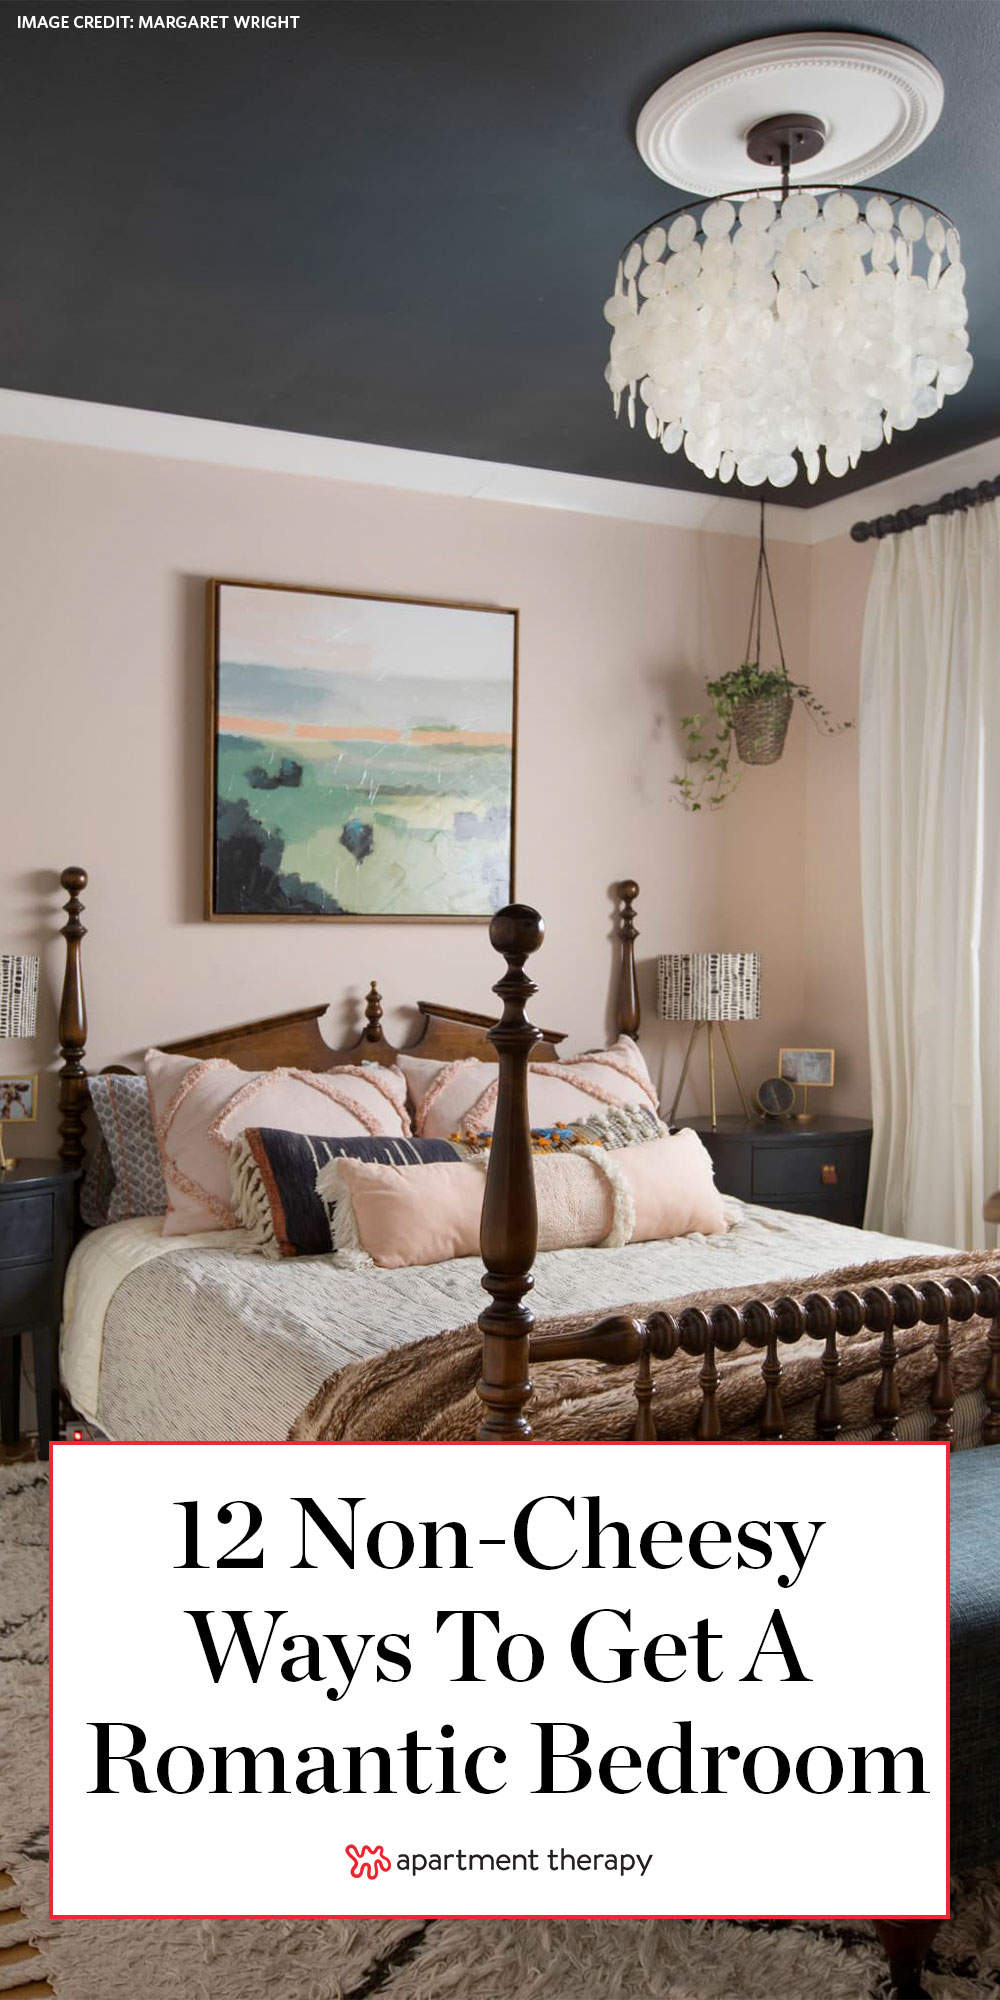 12 Romantic Bedroom Ideas How To Add Romance Decorating Apartment Therapy